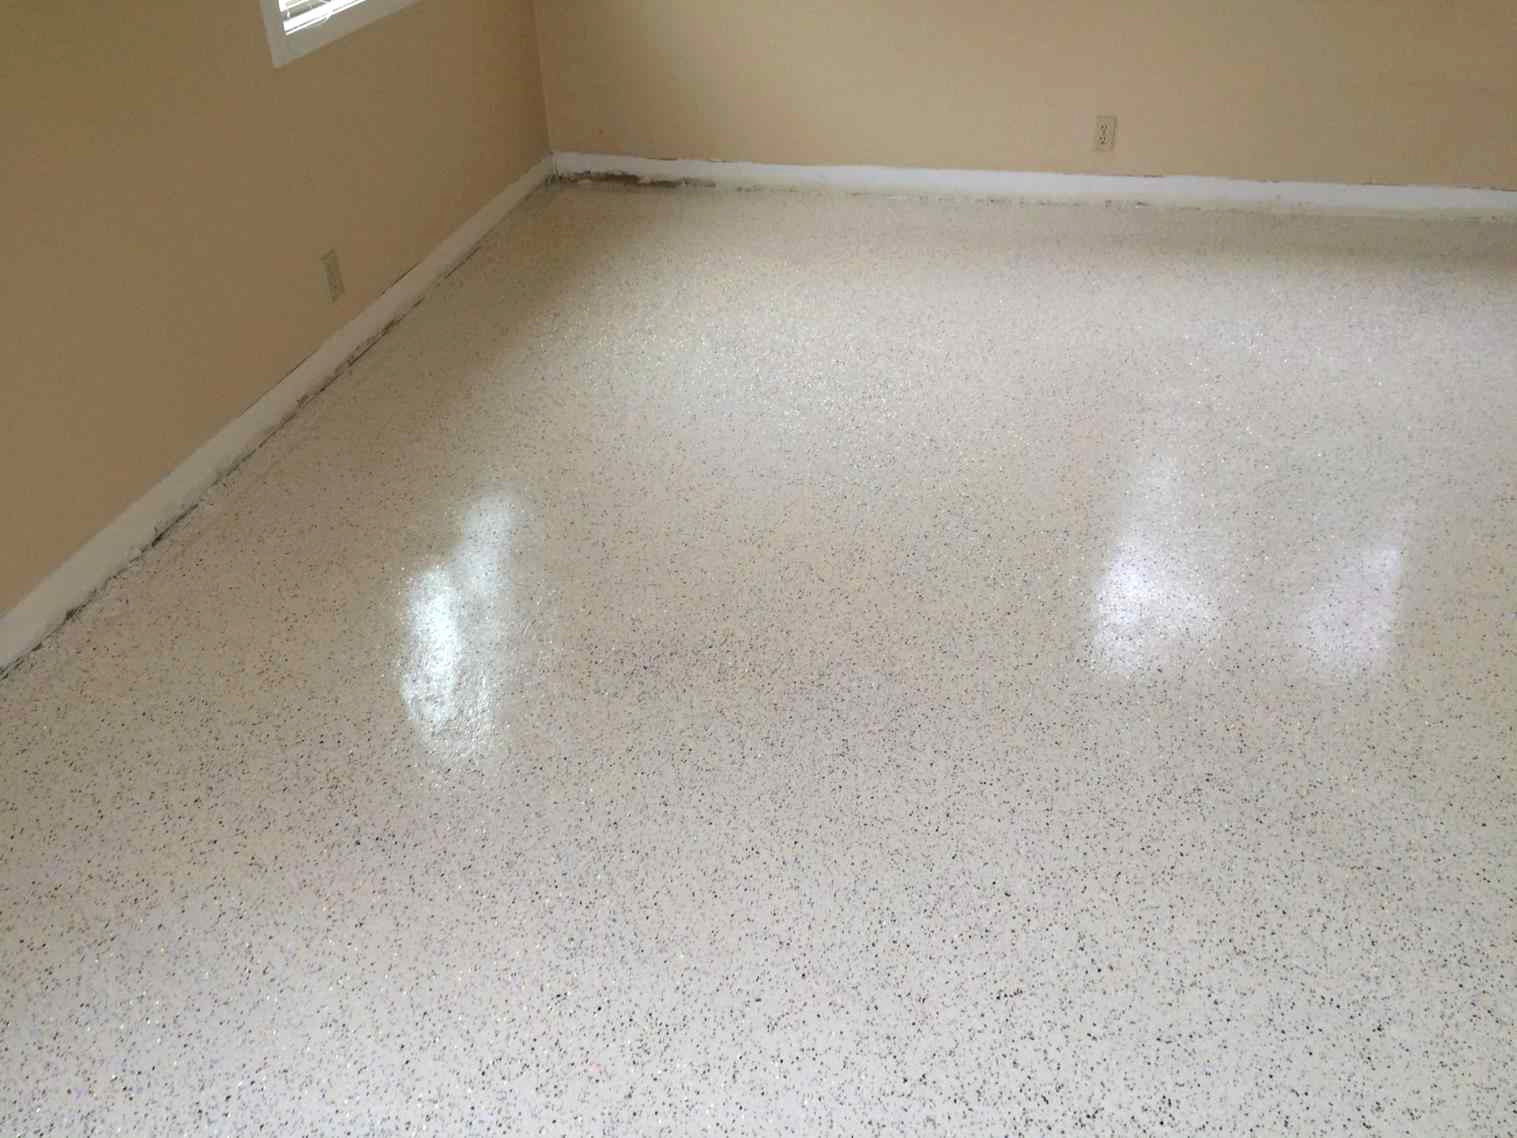 lowes hardwood floor wax of concrete floor paint lowes awesome patio railing ideas wooden porch with regard to concrete floor paint lowes best of epoxy flooring colors epoxy flooring colors unowinc